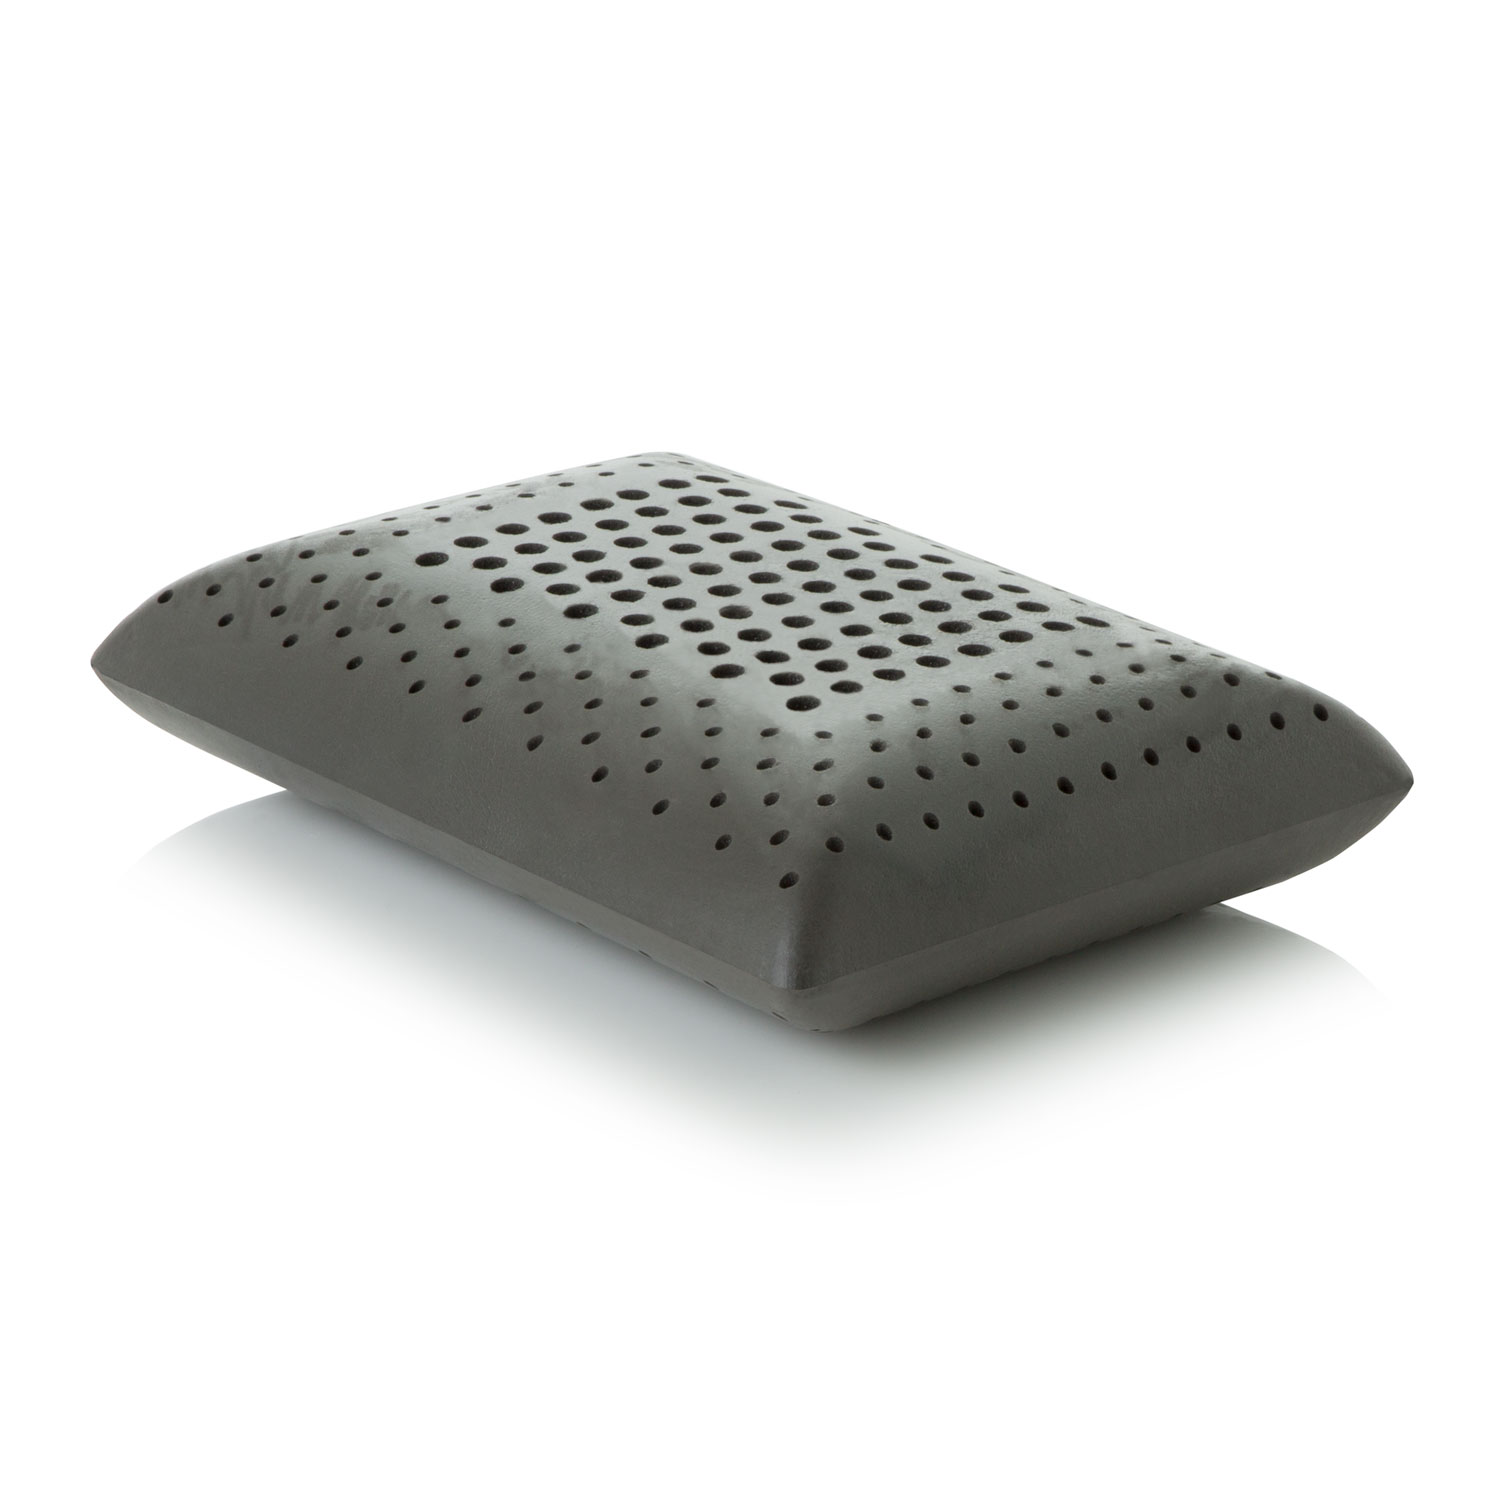 Zoned Dogh Bamboo Charcoal Travel Pillow By Z Linenspa